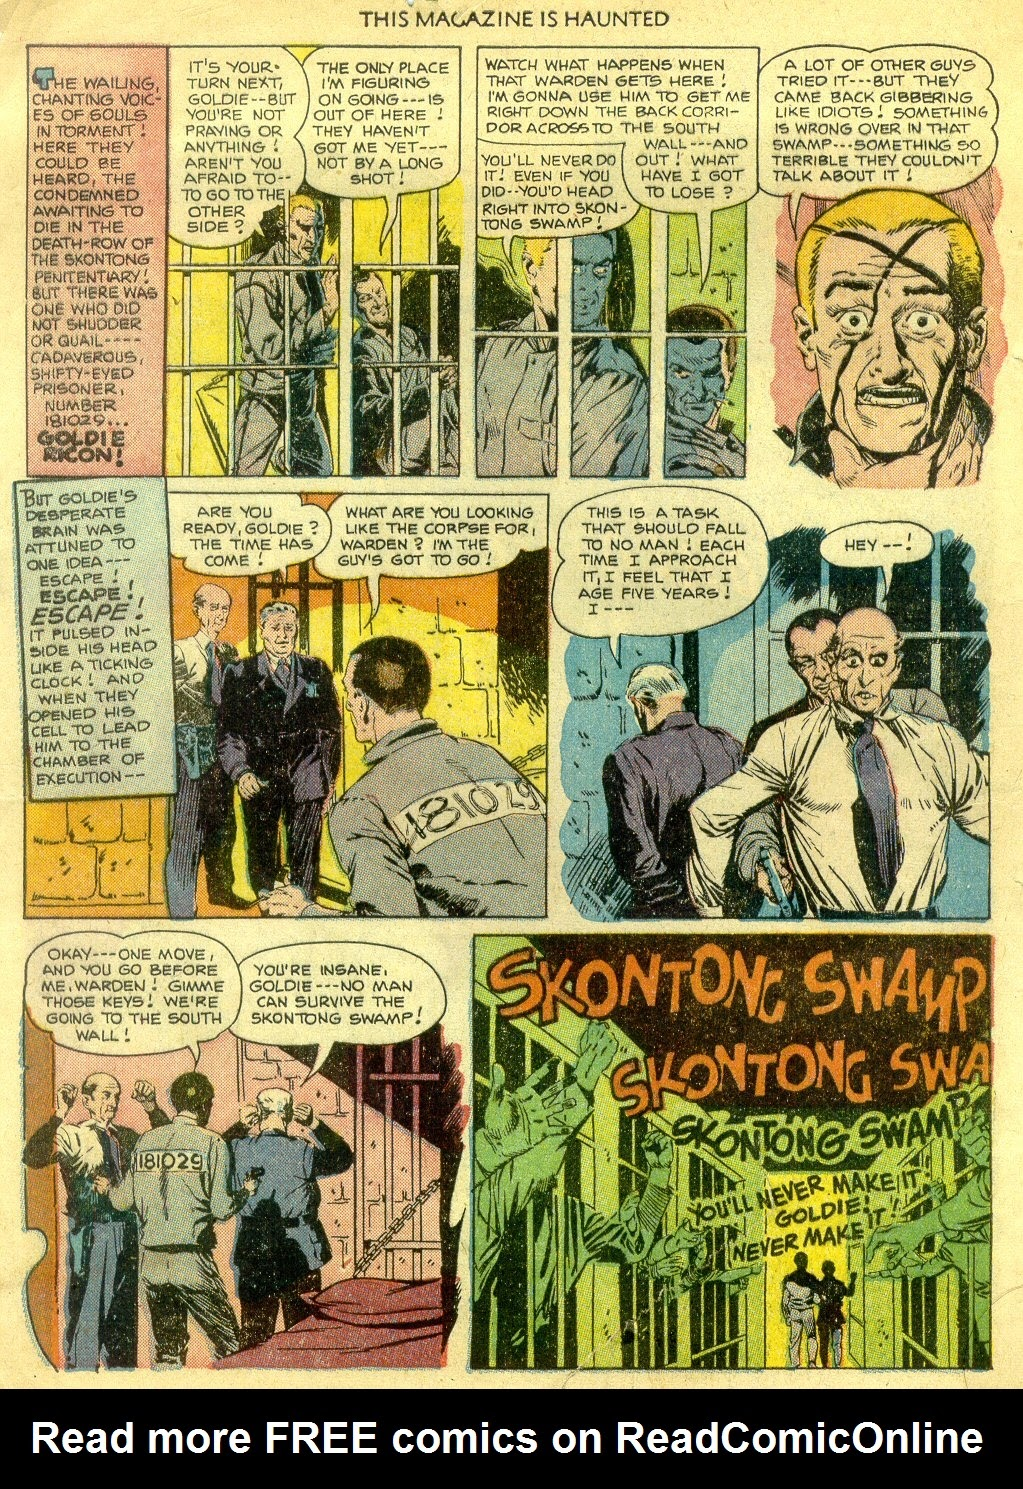 Read online This Magazine Is Haunted comic -  Issue #5 - 3